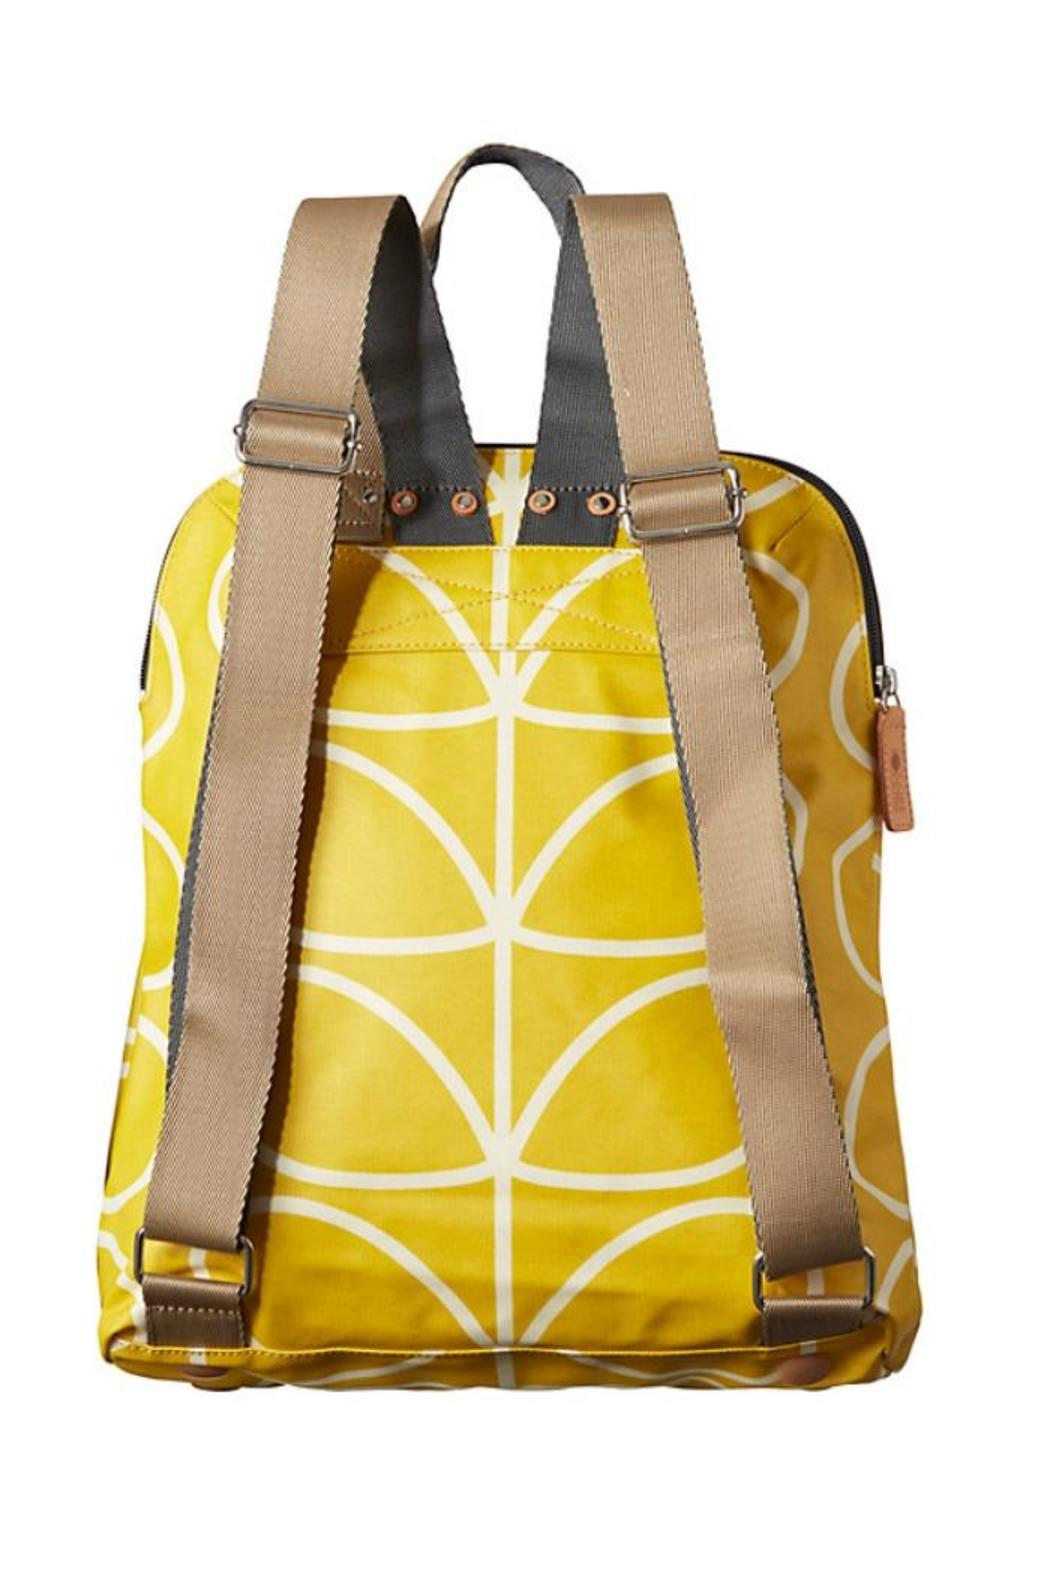 Orla Kiely Yellow-Stem Backpack from Seattle by STUHLBERGS — Shoptiques bd35e319d6450